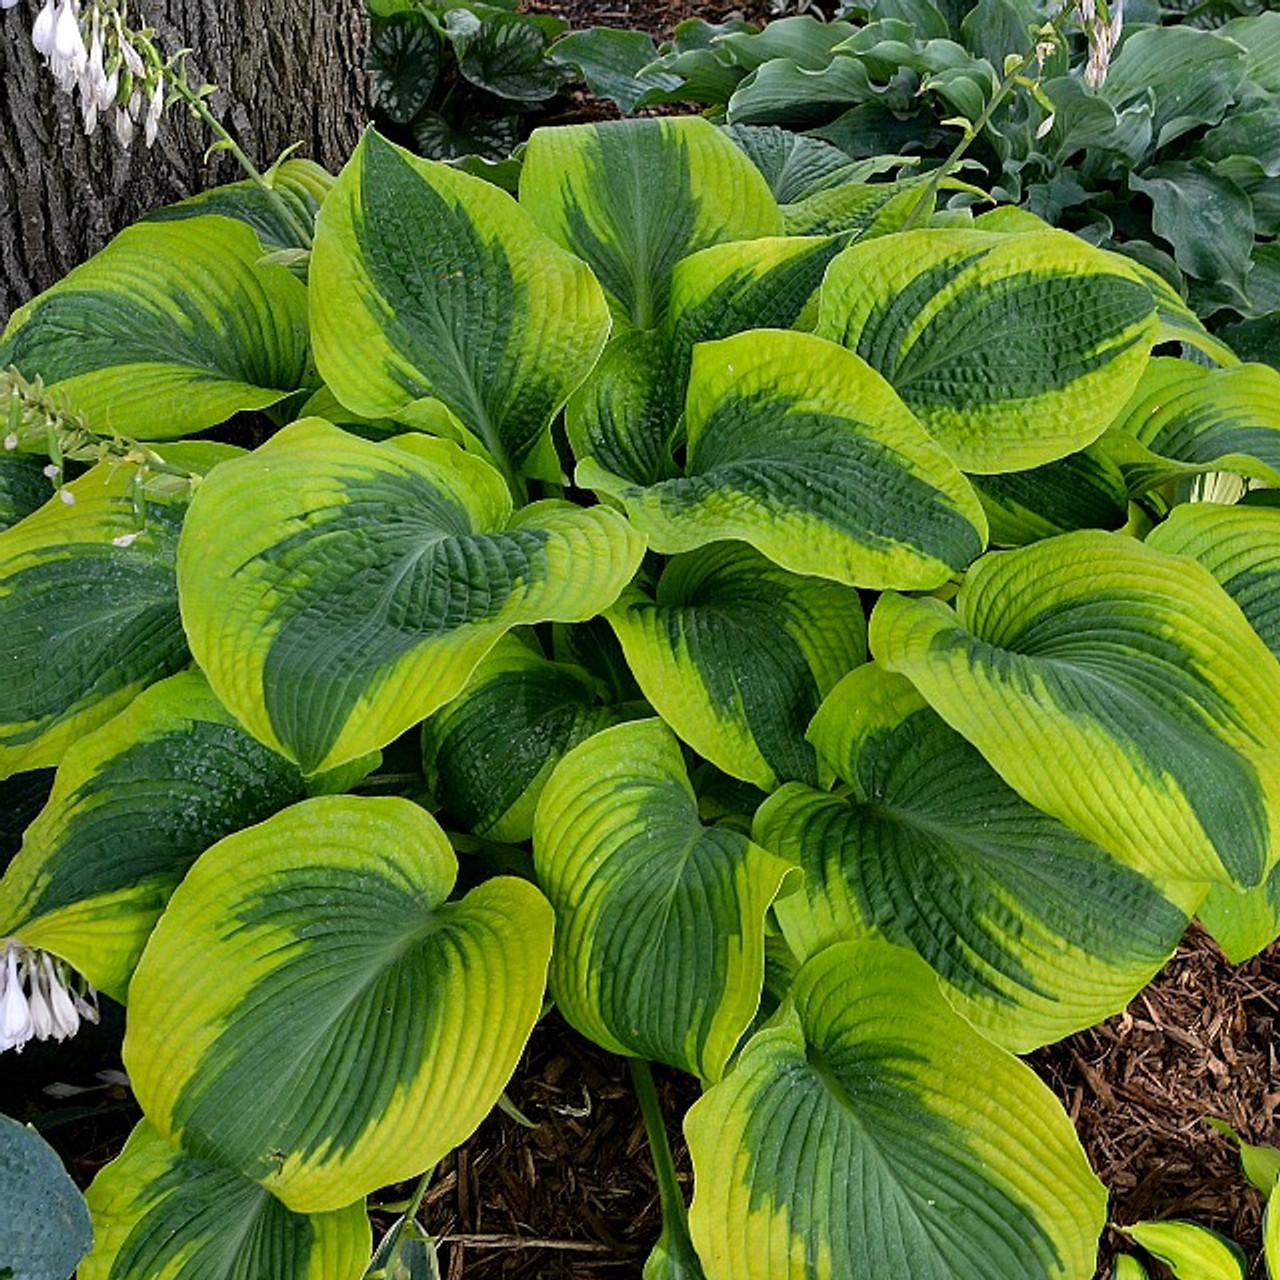 Afterglow Hosta Shade Perennial Sun Tolerant Hosta Plant